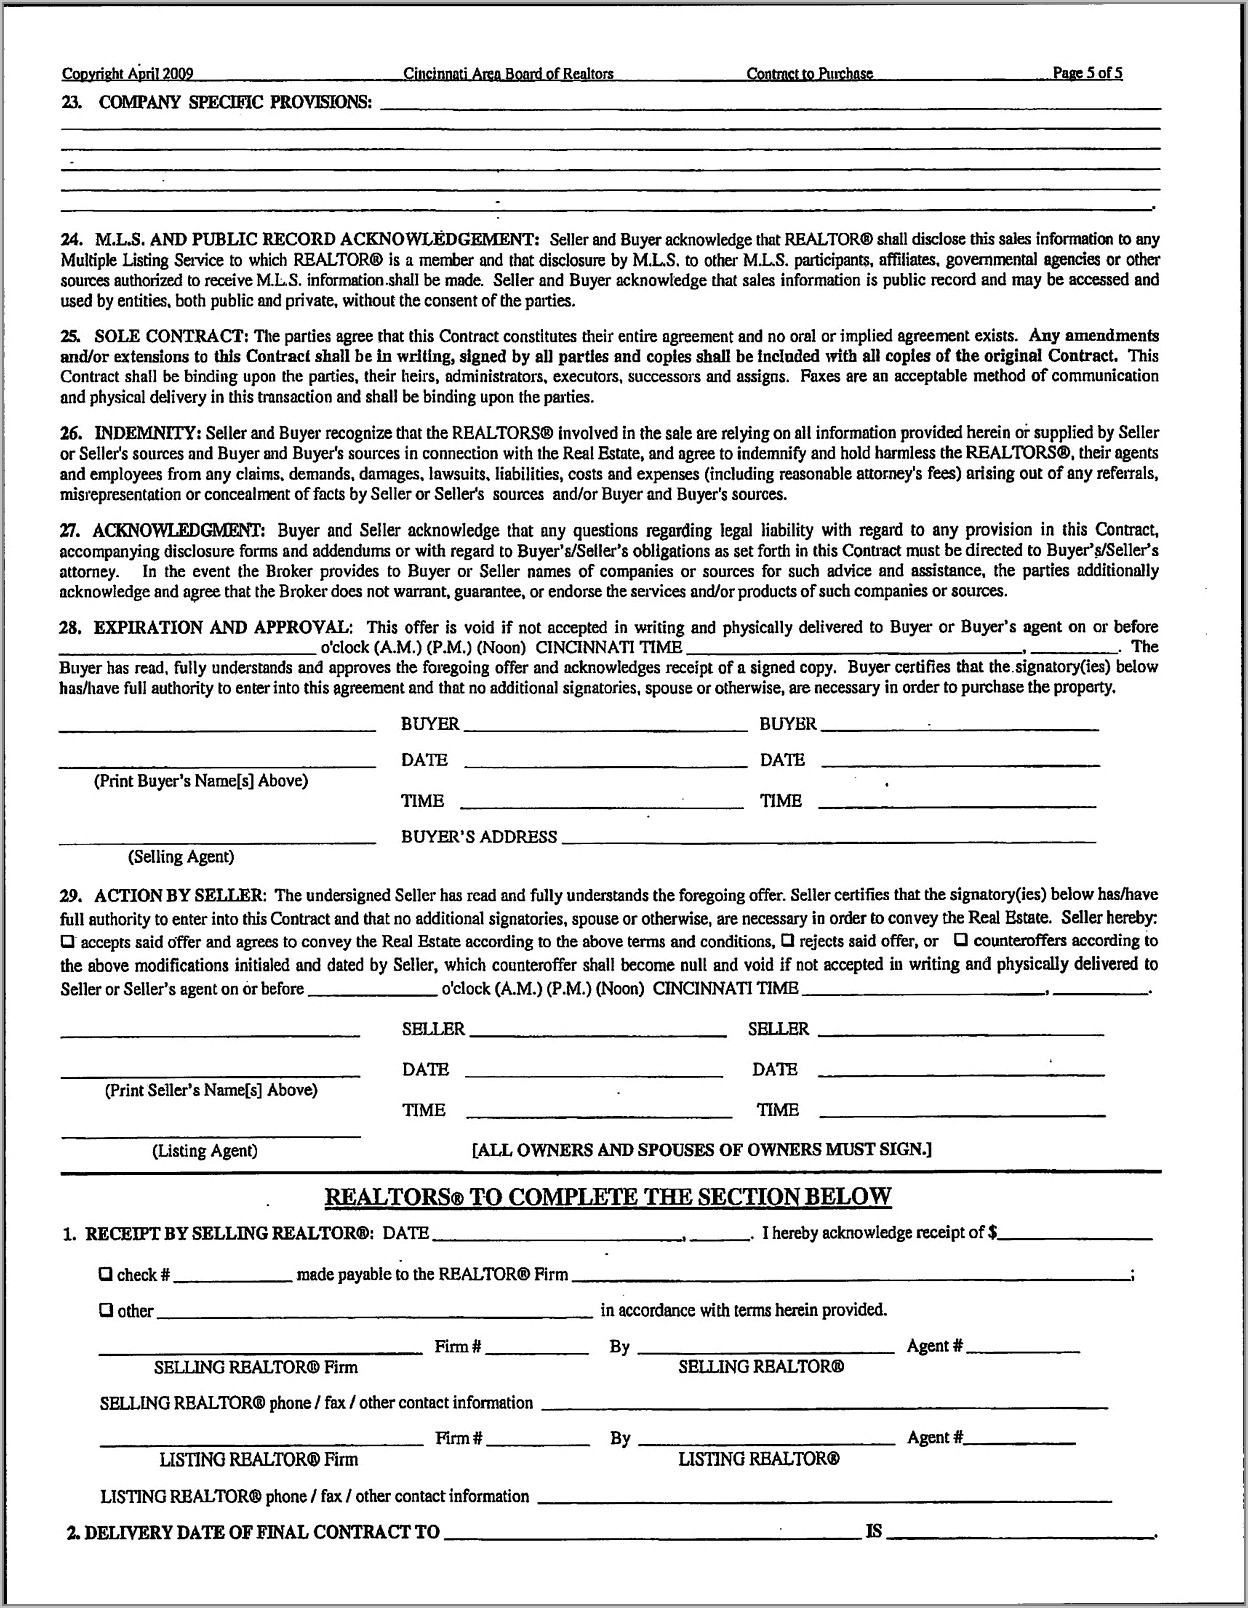 Real Estate Sales Contract Addendum Form